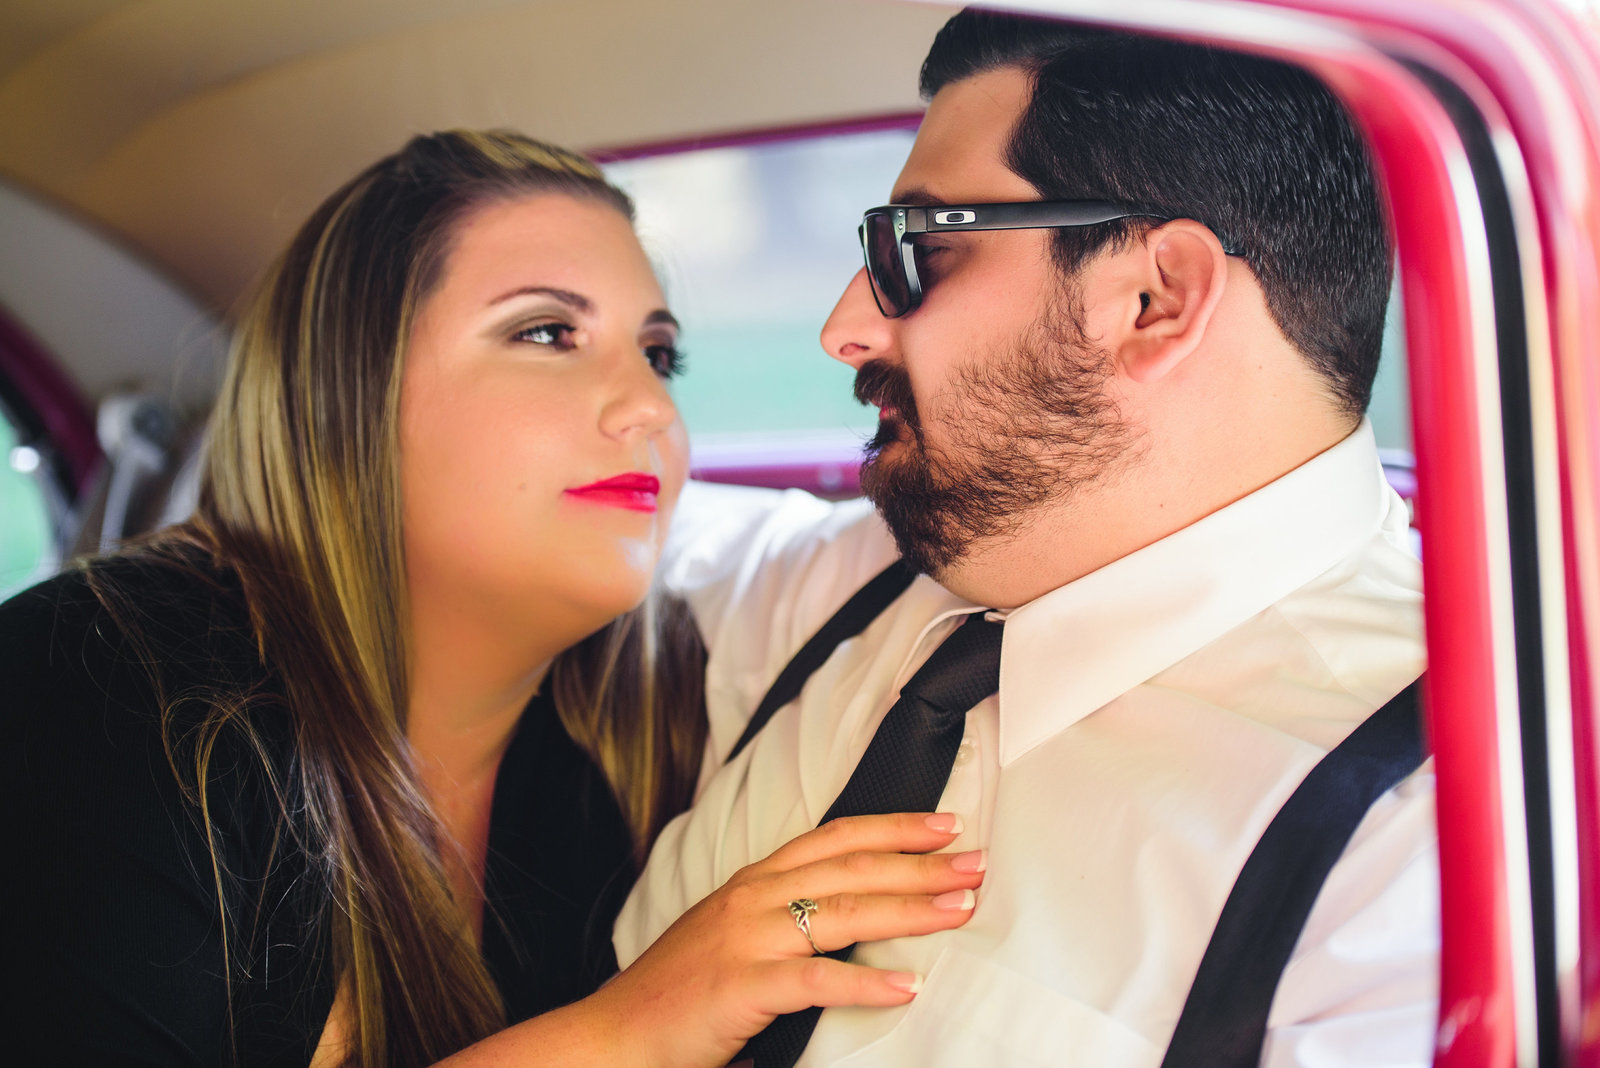 Retro_Pinup_Car_engagement_session_Nj025